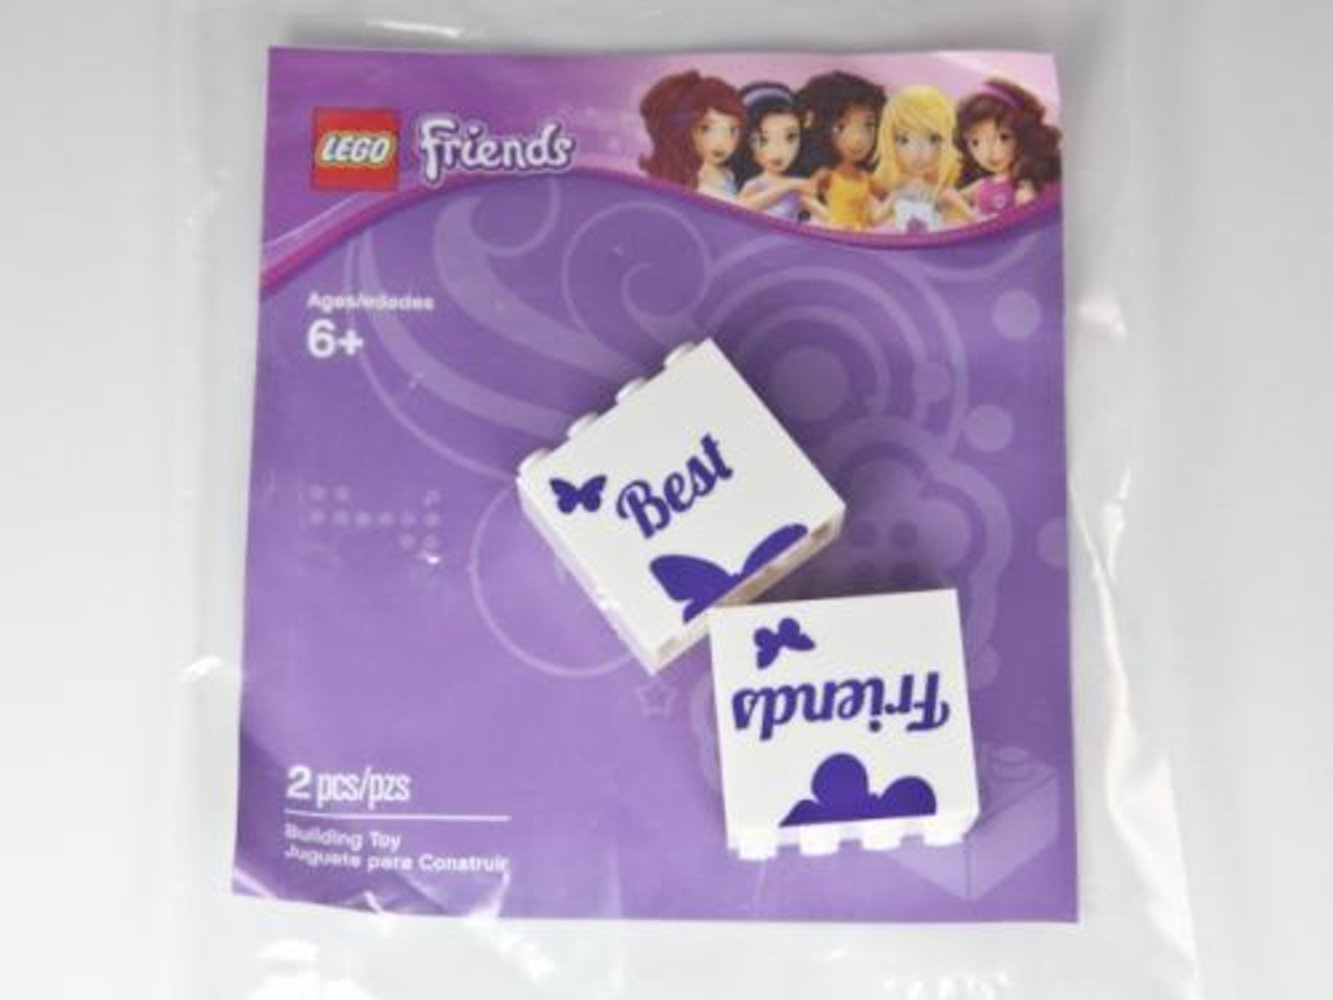 Best Friends Promotional Brick Set